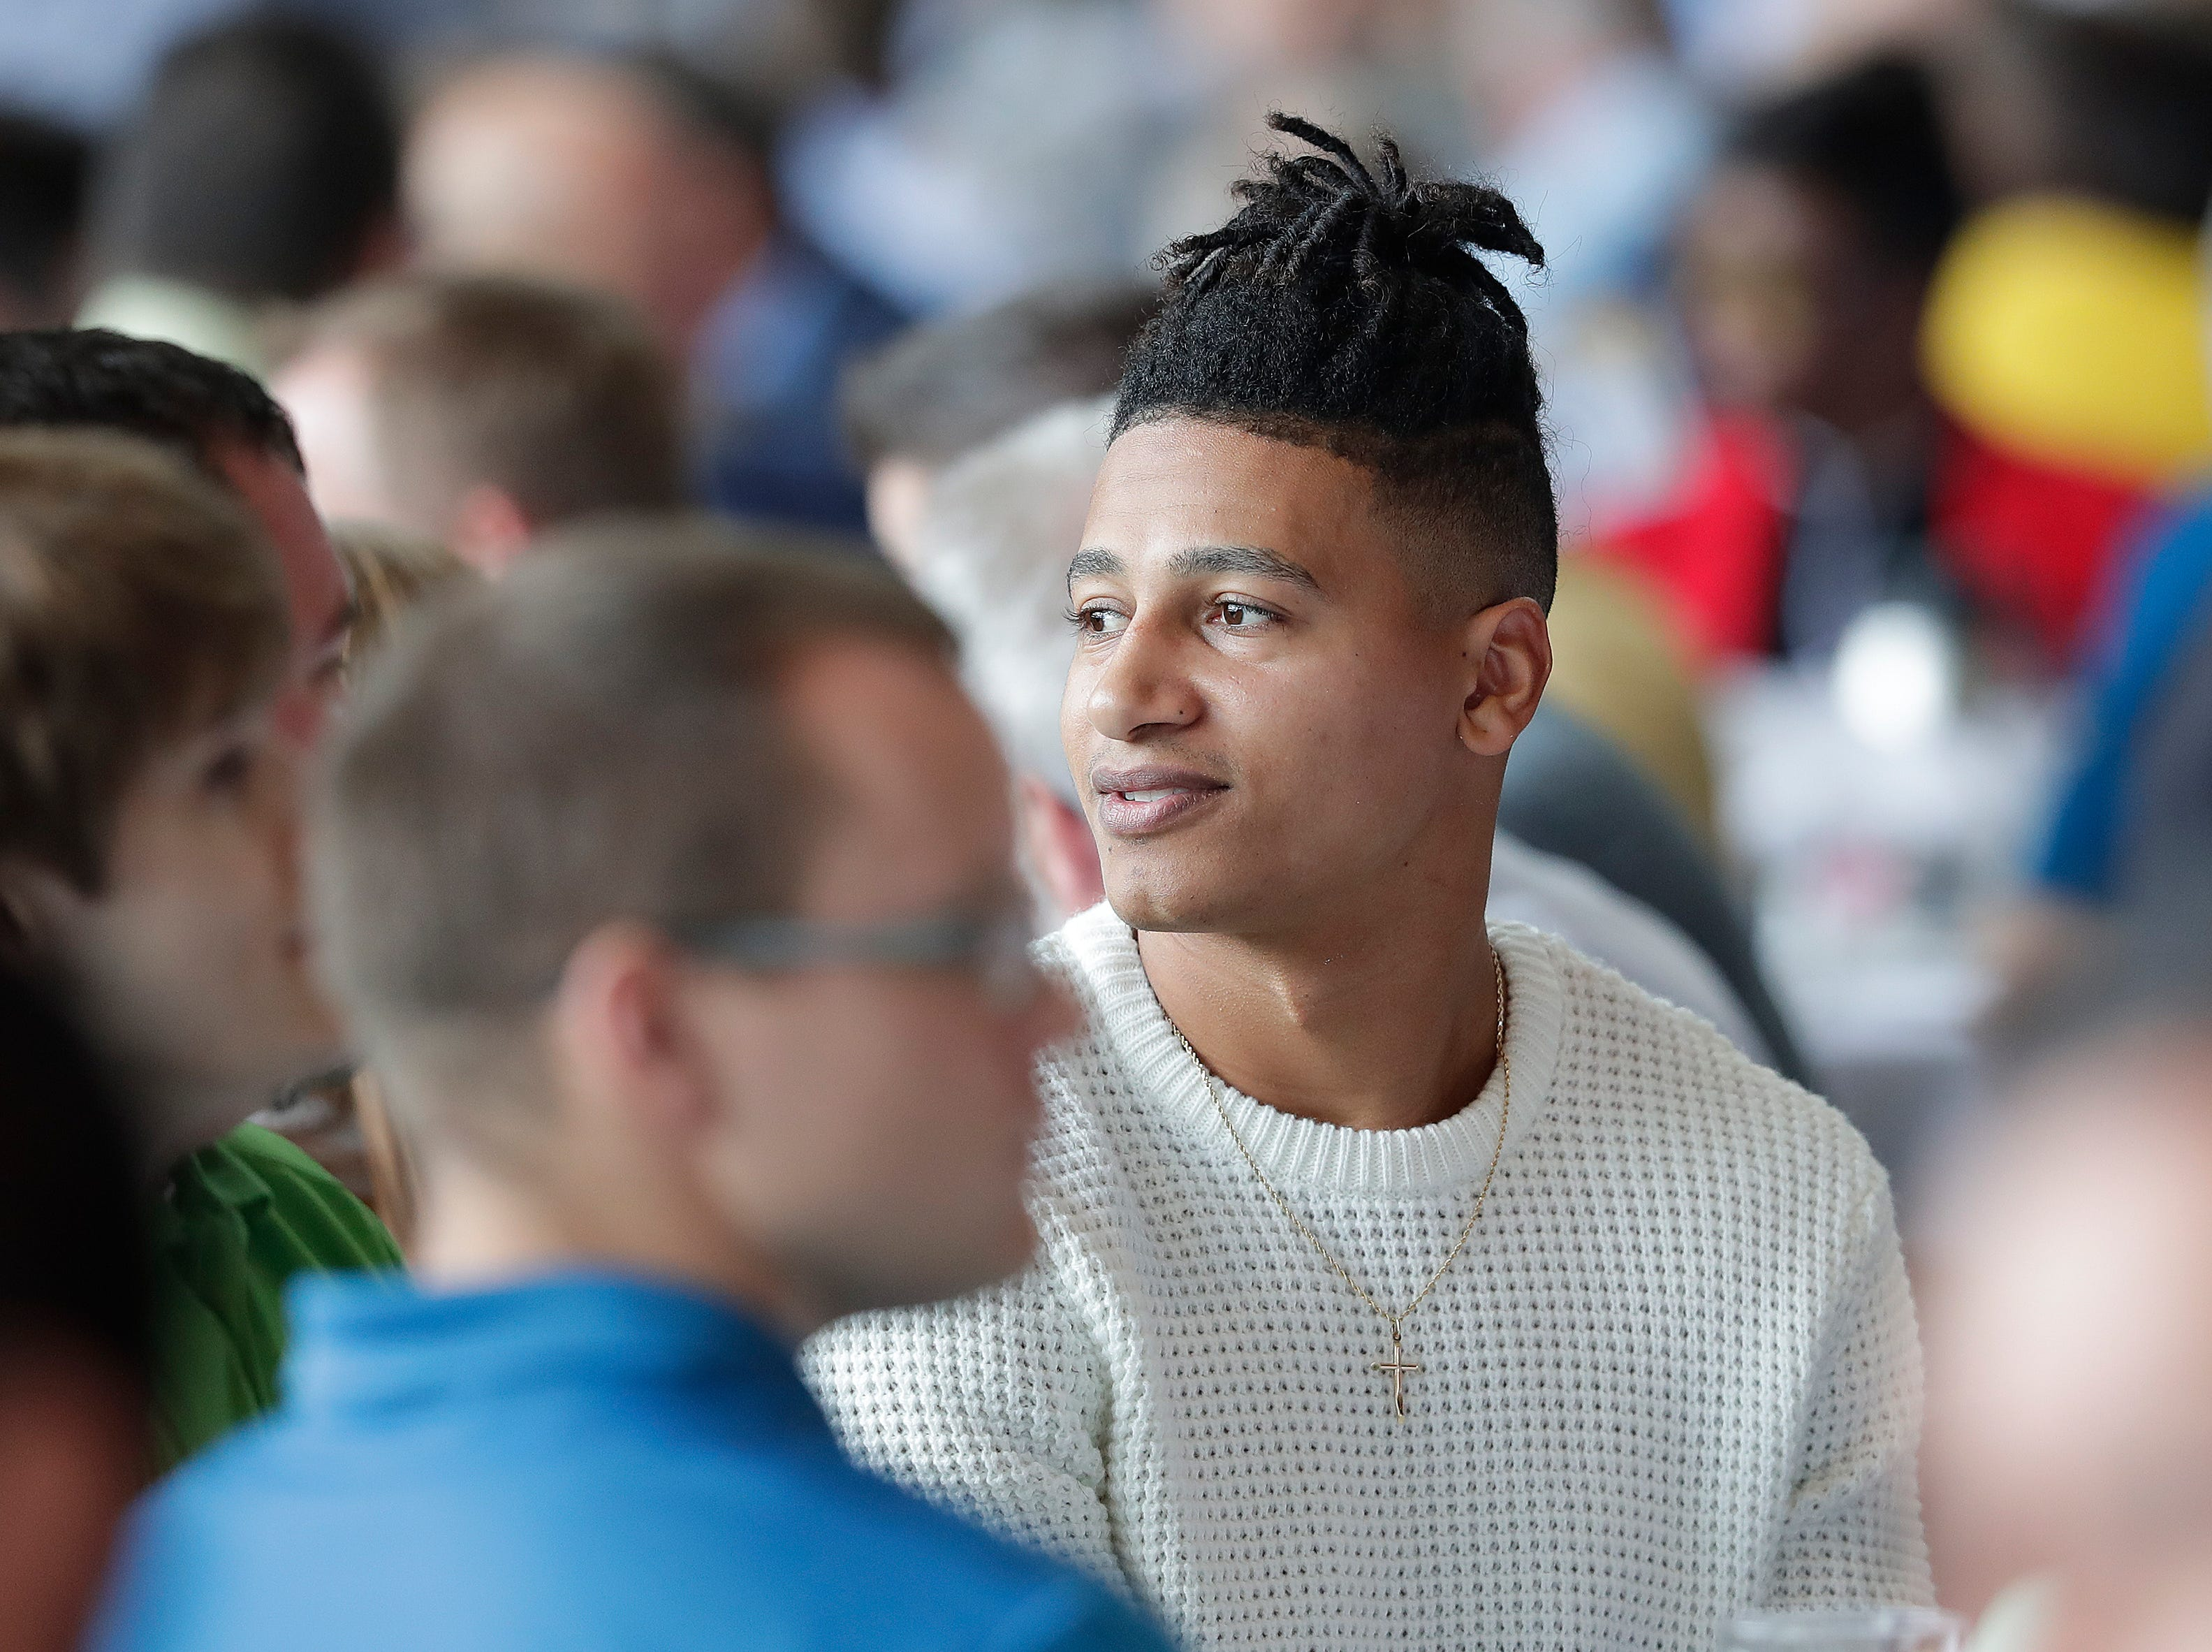 Green Bay Packers wide receiver Trevor Davis (11) during the Green Bay Chamber of Commerce Welcome Back Packers Luncheon at Lambeau Field Wednesday, August 29, 2018 in Green Bay, Wis.